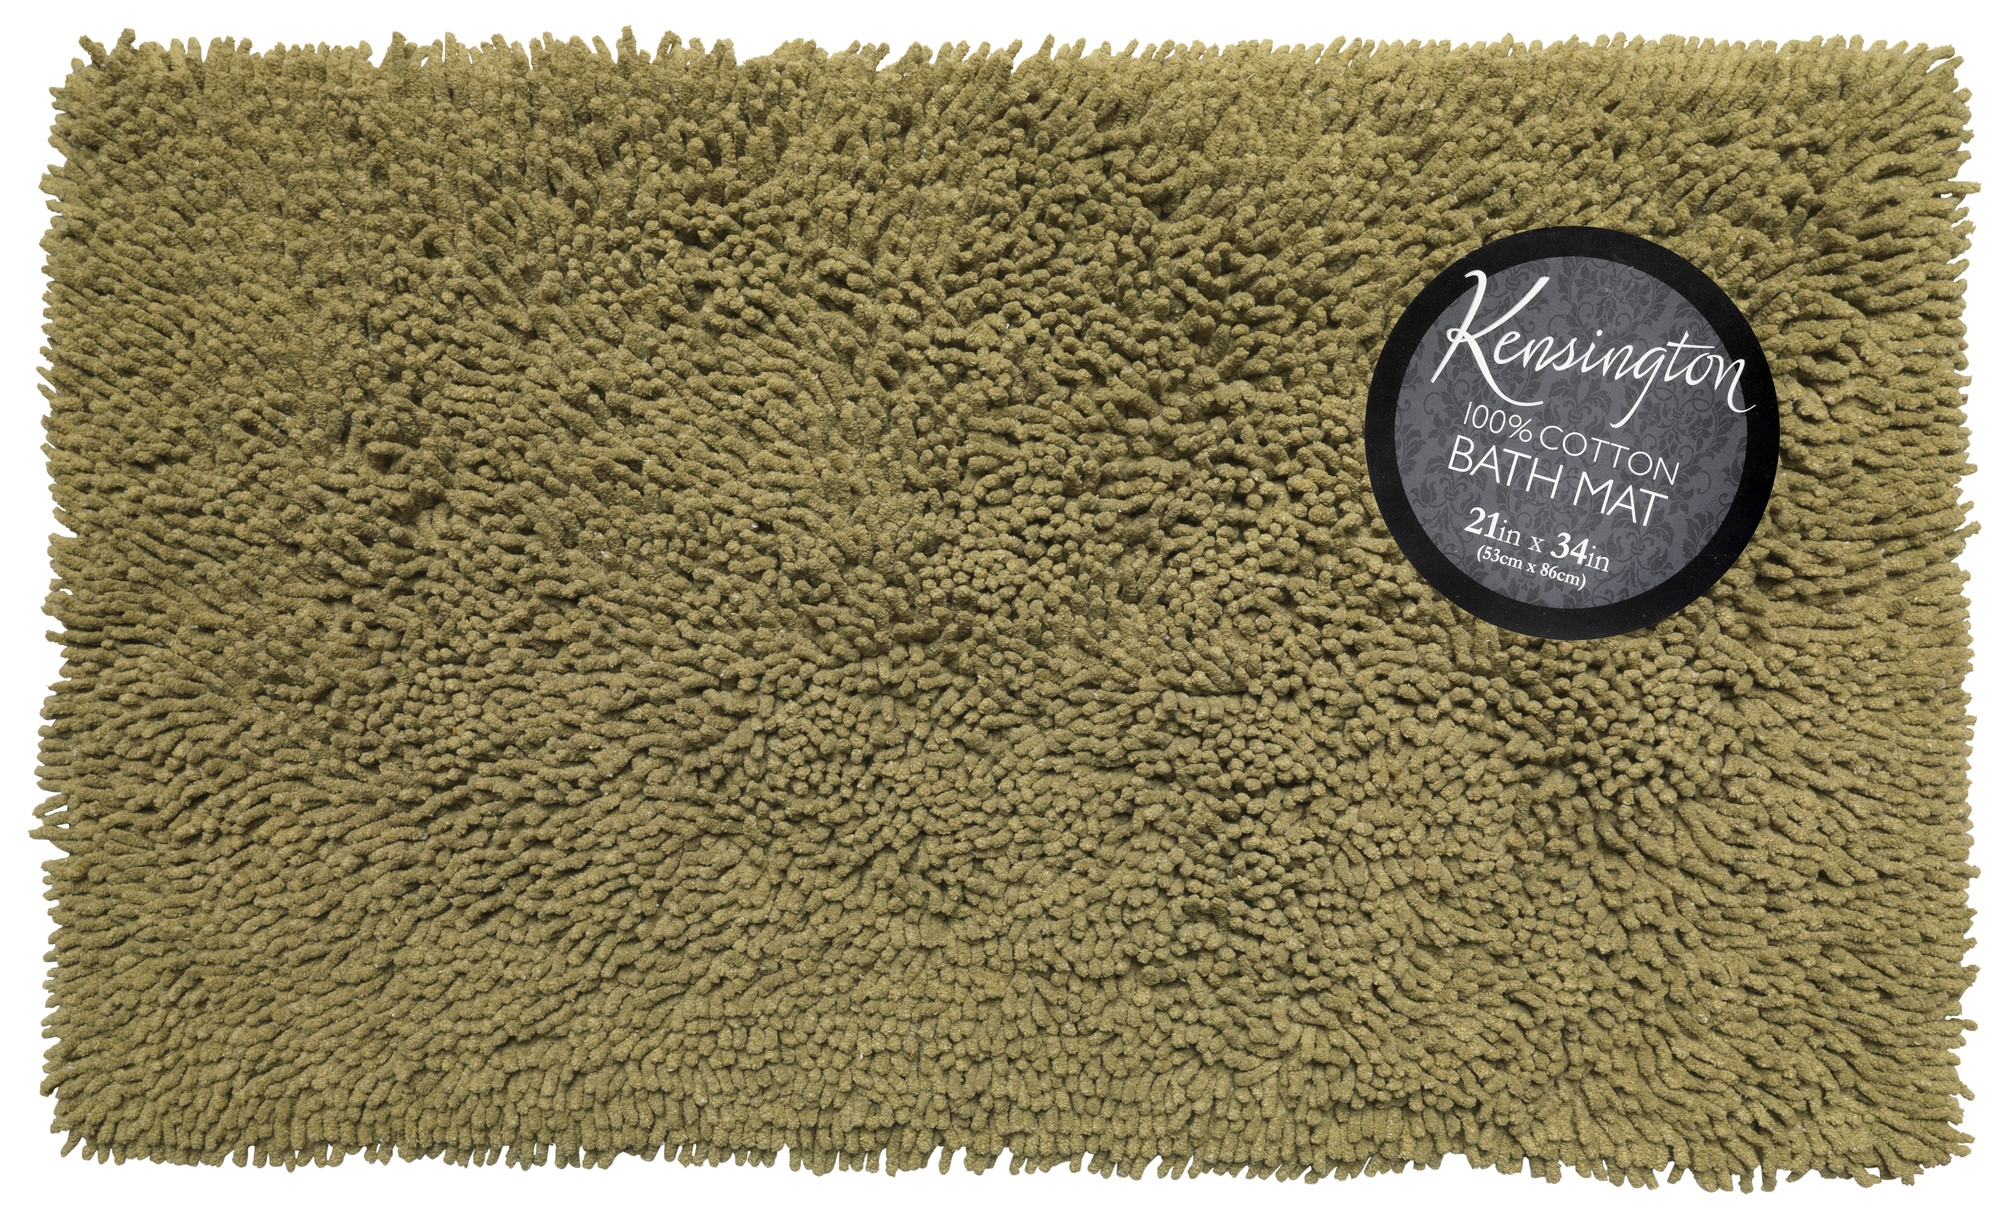 Chenille Bath Rug San Remo Collectionshaggy cotton chenille bath rug rugs cotton and bath rugs